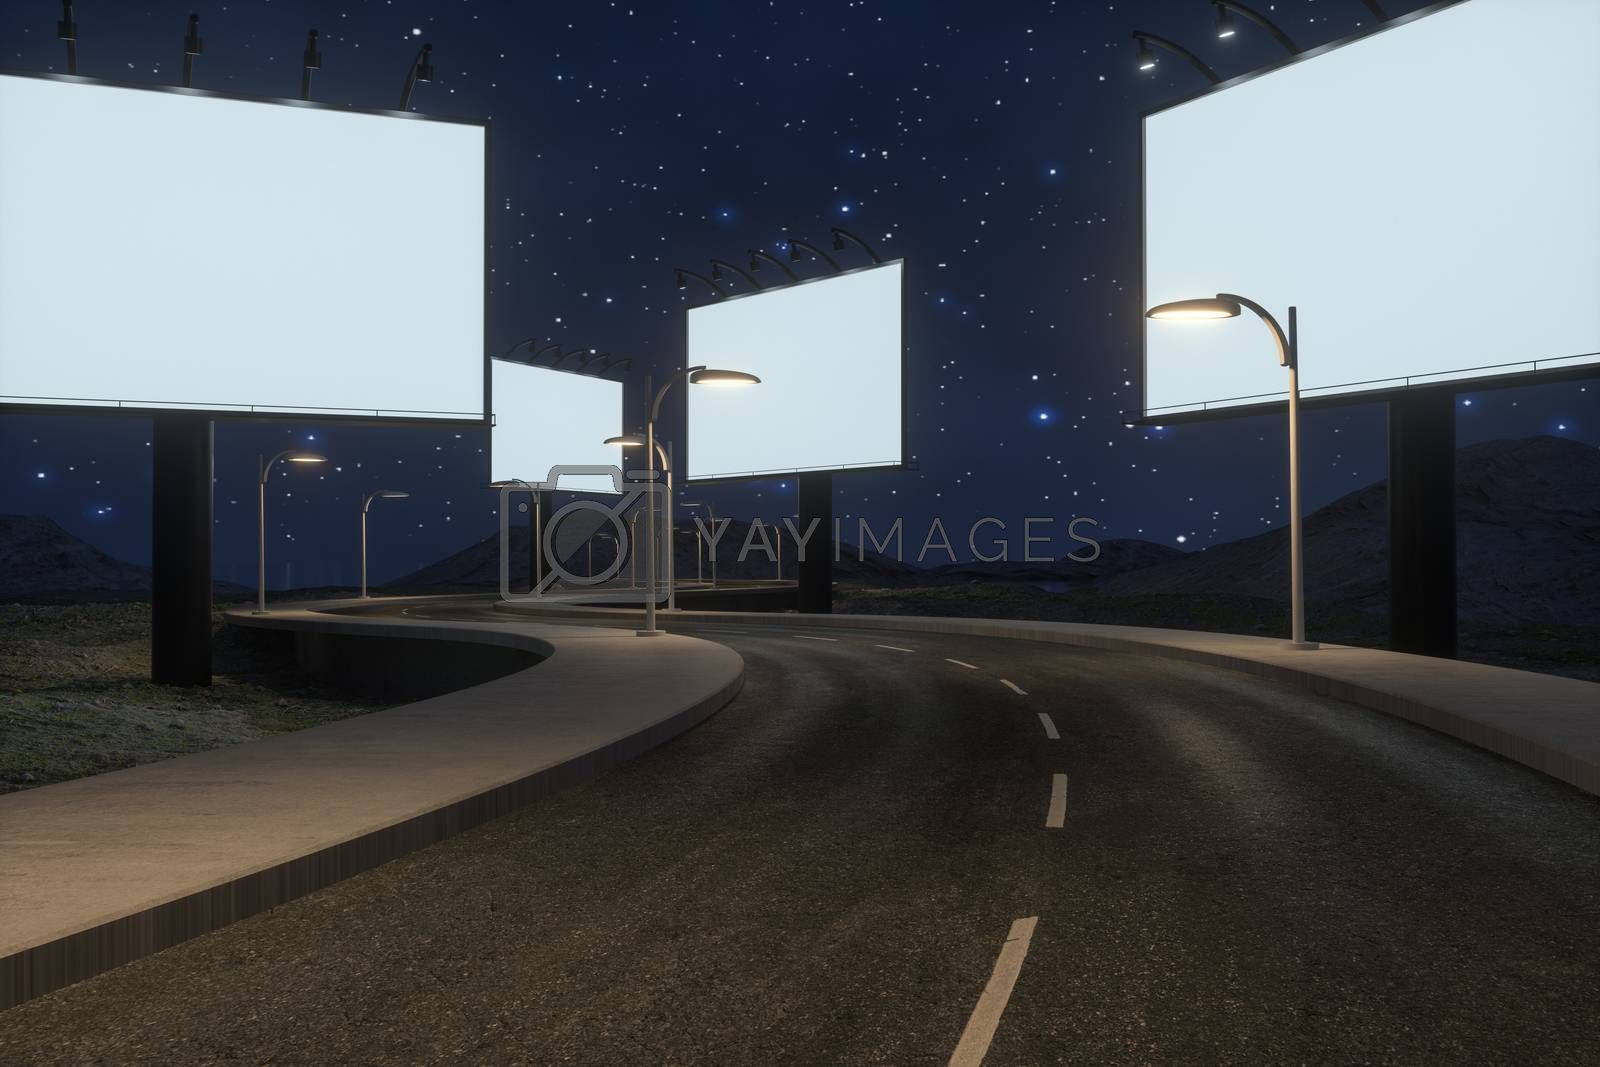 Blank advertising board and winding road, 3d rendering by vinkfan